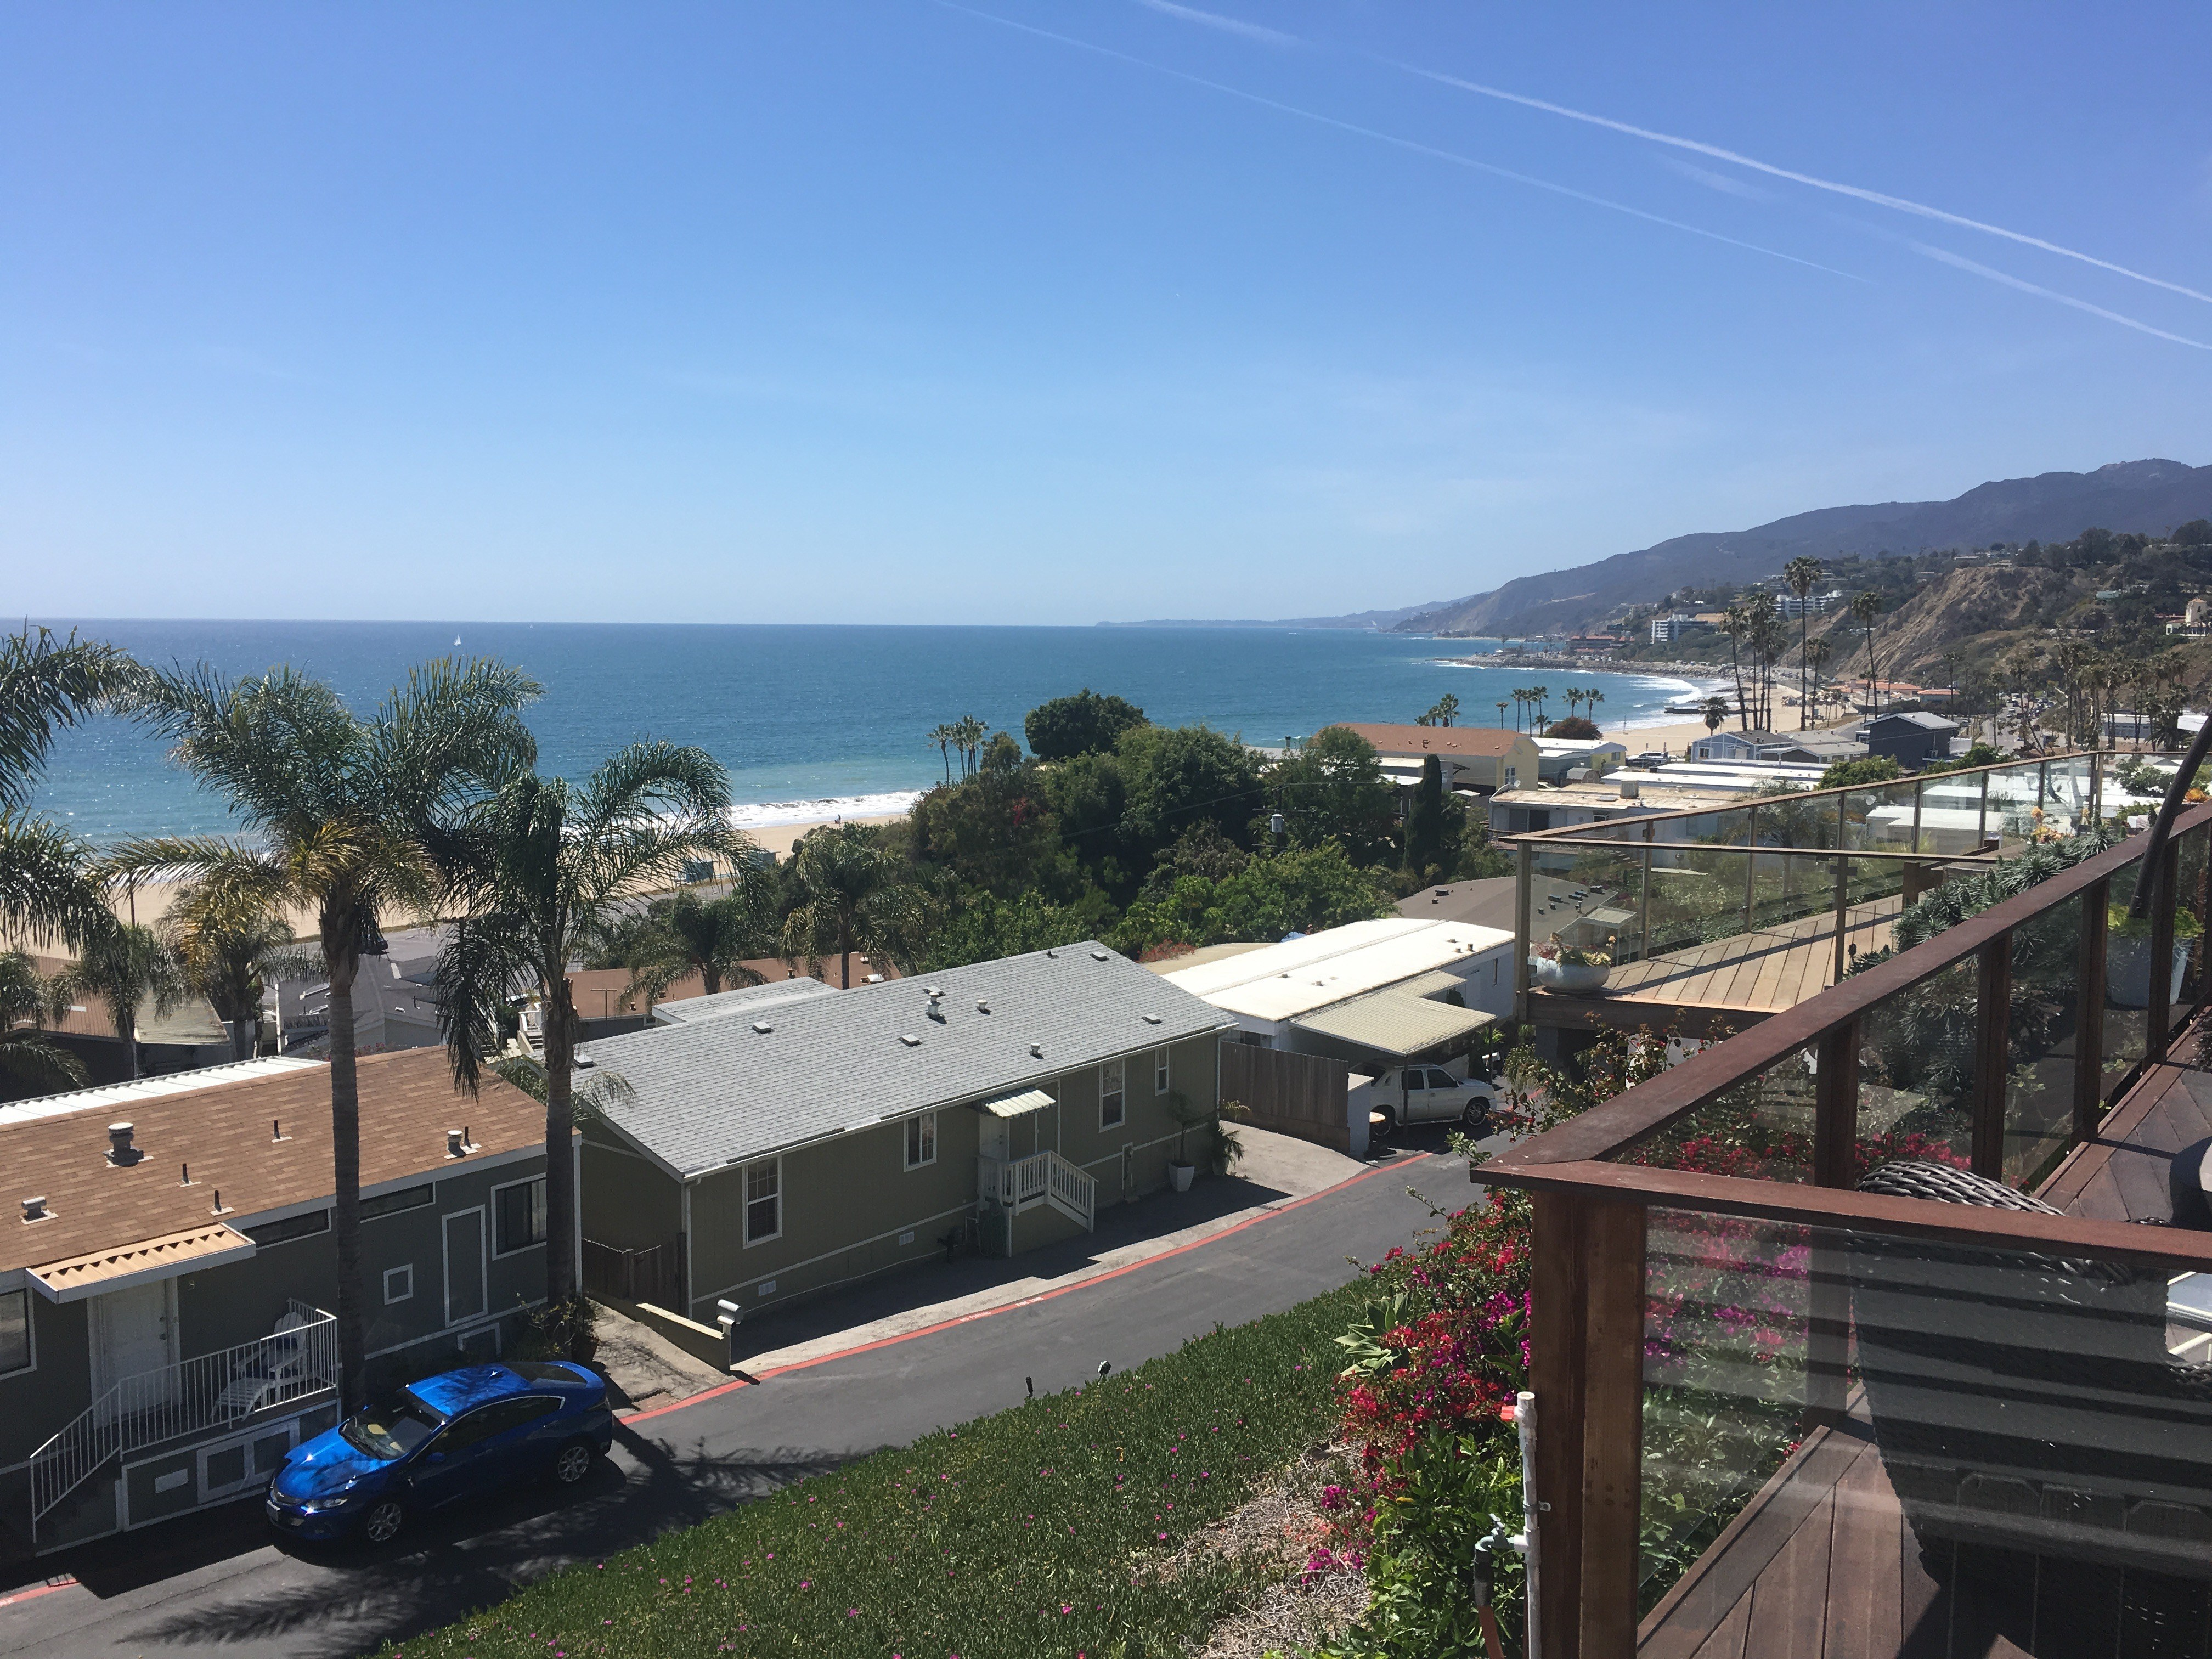 16 samoa pacific palisades ca 90272 gibson international for Where is pacific palisades